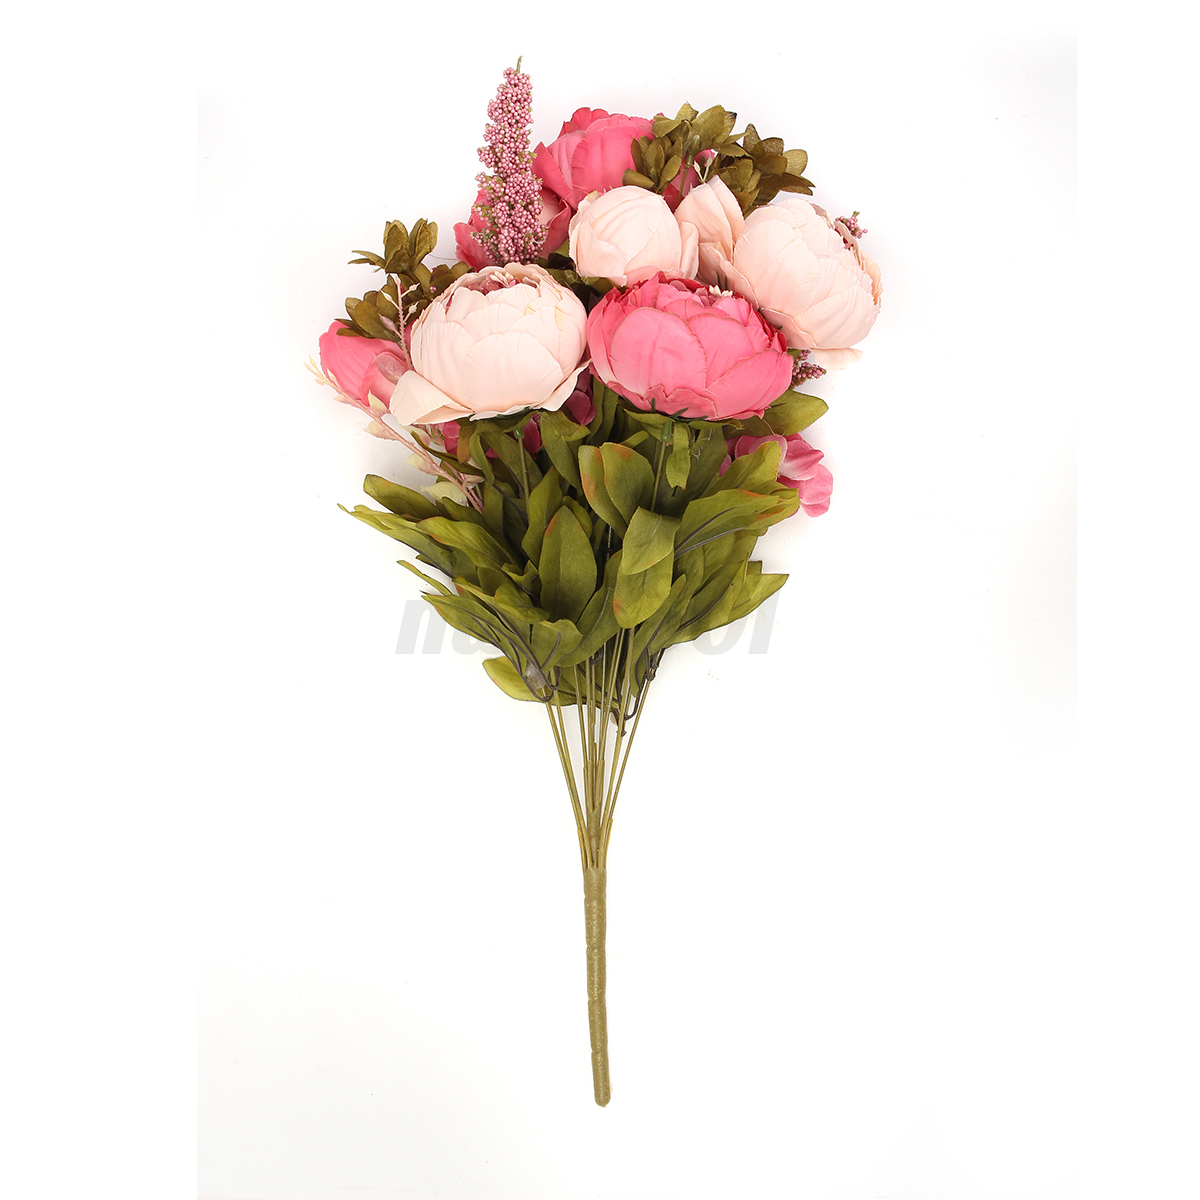 Flowers artificial peony silk fake bouquet home wedding for Artificial flowers decoration home